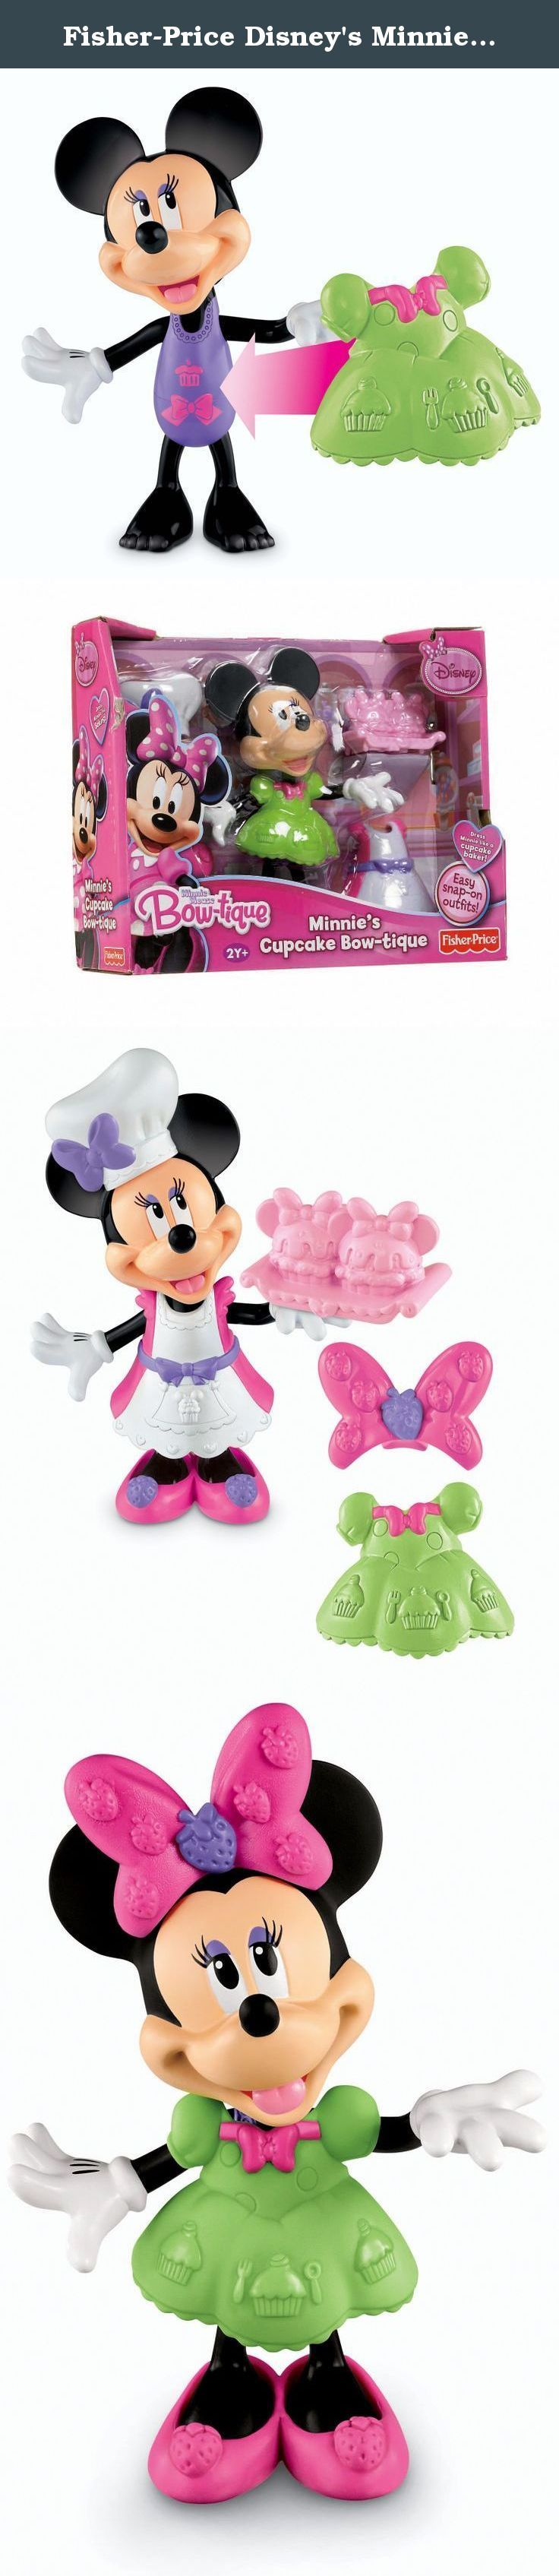 Fisher-Price Disney's Minnie's Cupcake Bowtique. Fisher Price Minnie Mouse Bow-Tique Minnie's Cupcake Bowtique Help Minnie look her best no matter what she's doing! Dress Minnie any way you want with her stylish snap and fit accessories! Each assortment comes with different themed outfits and accessories! Dress Minnie like a cupcake baker with Minnie's Cupcake Bow-tique! Comes with a Minnie figure and two easy snap-on outfits -- a pretty yellow dress, and a baker's apron to get Minnie…